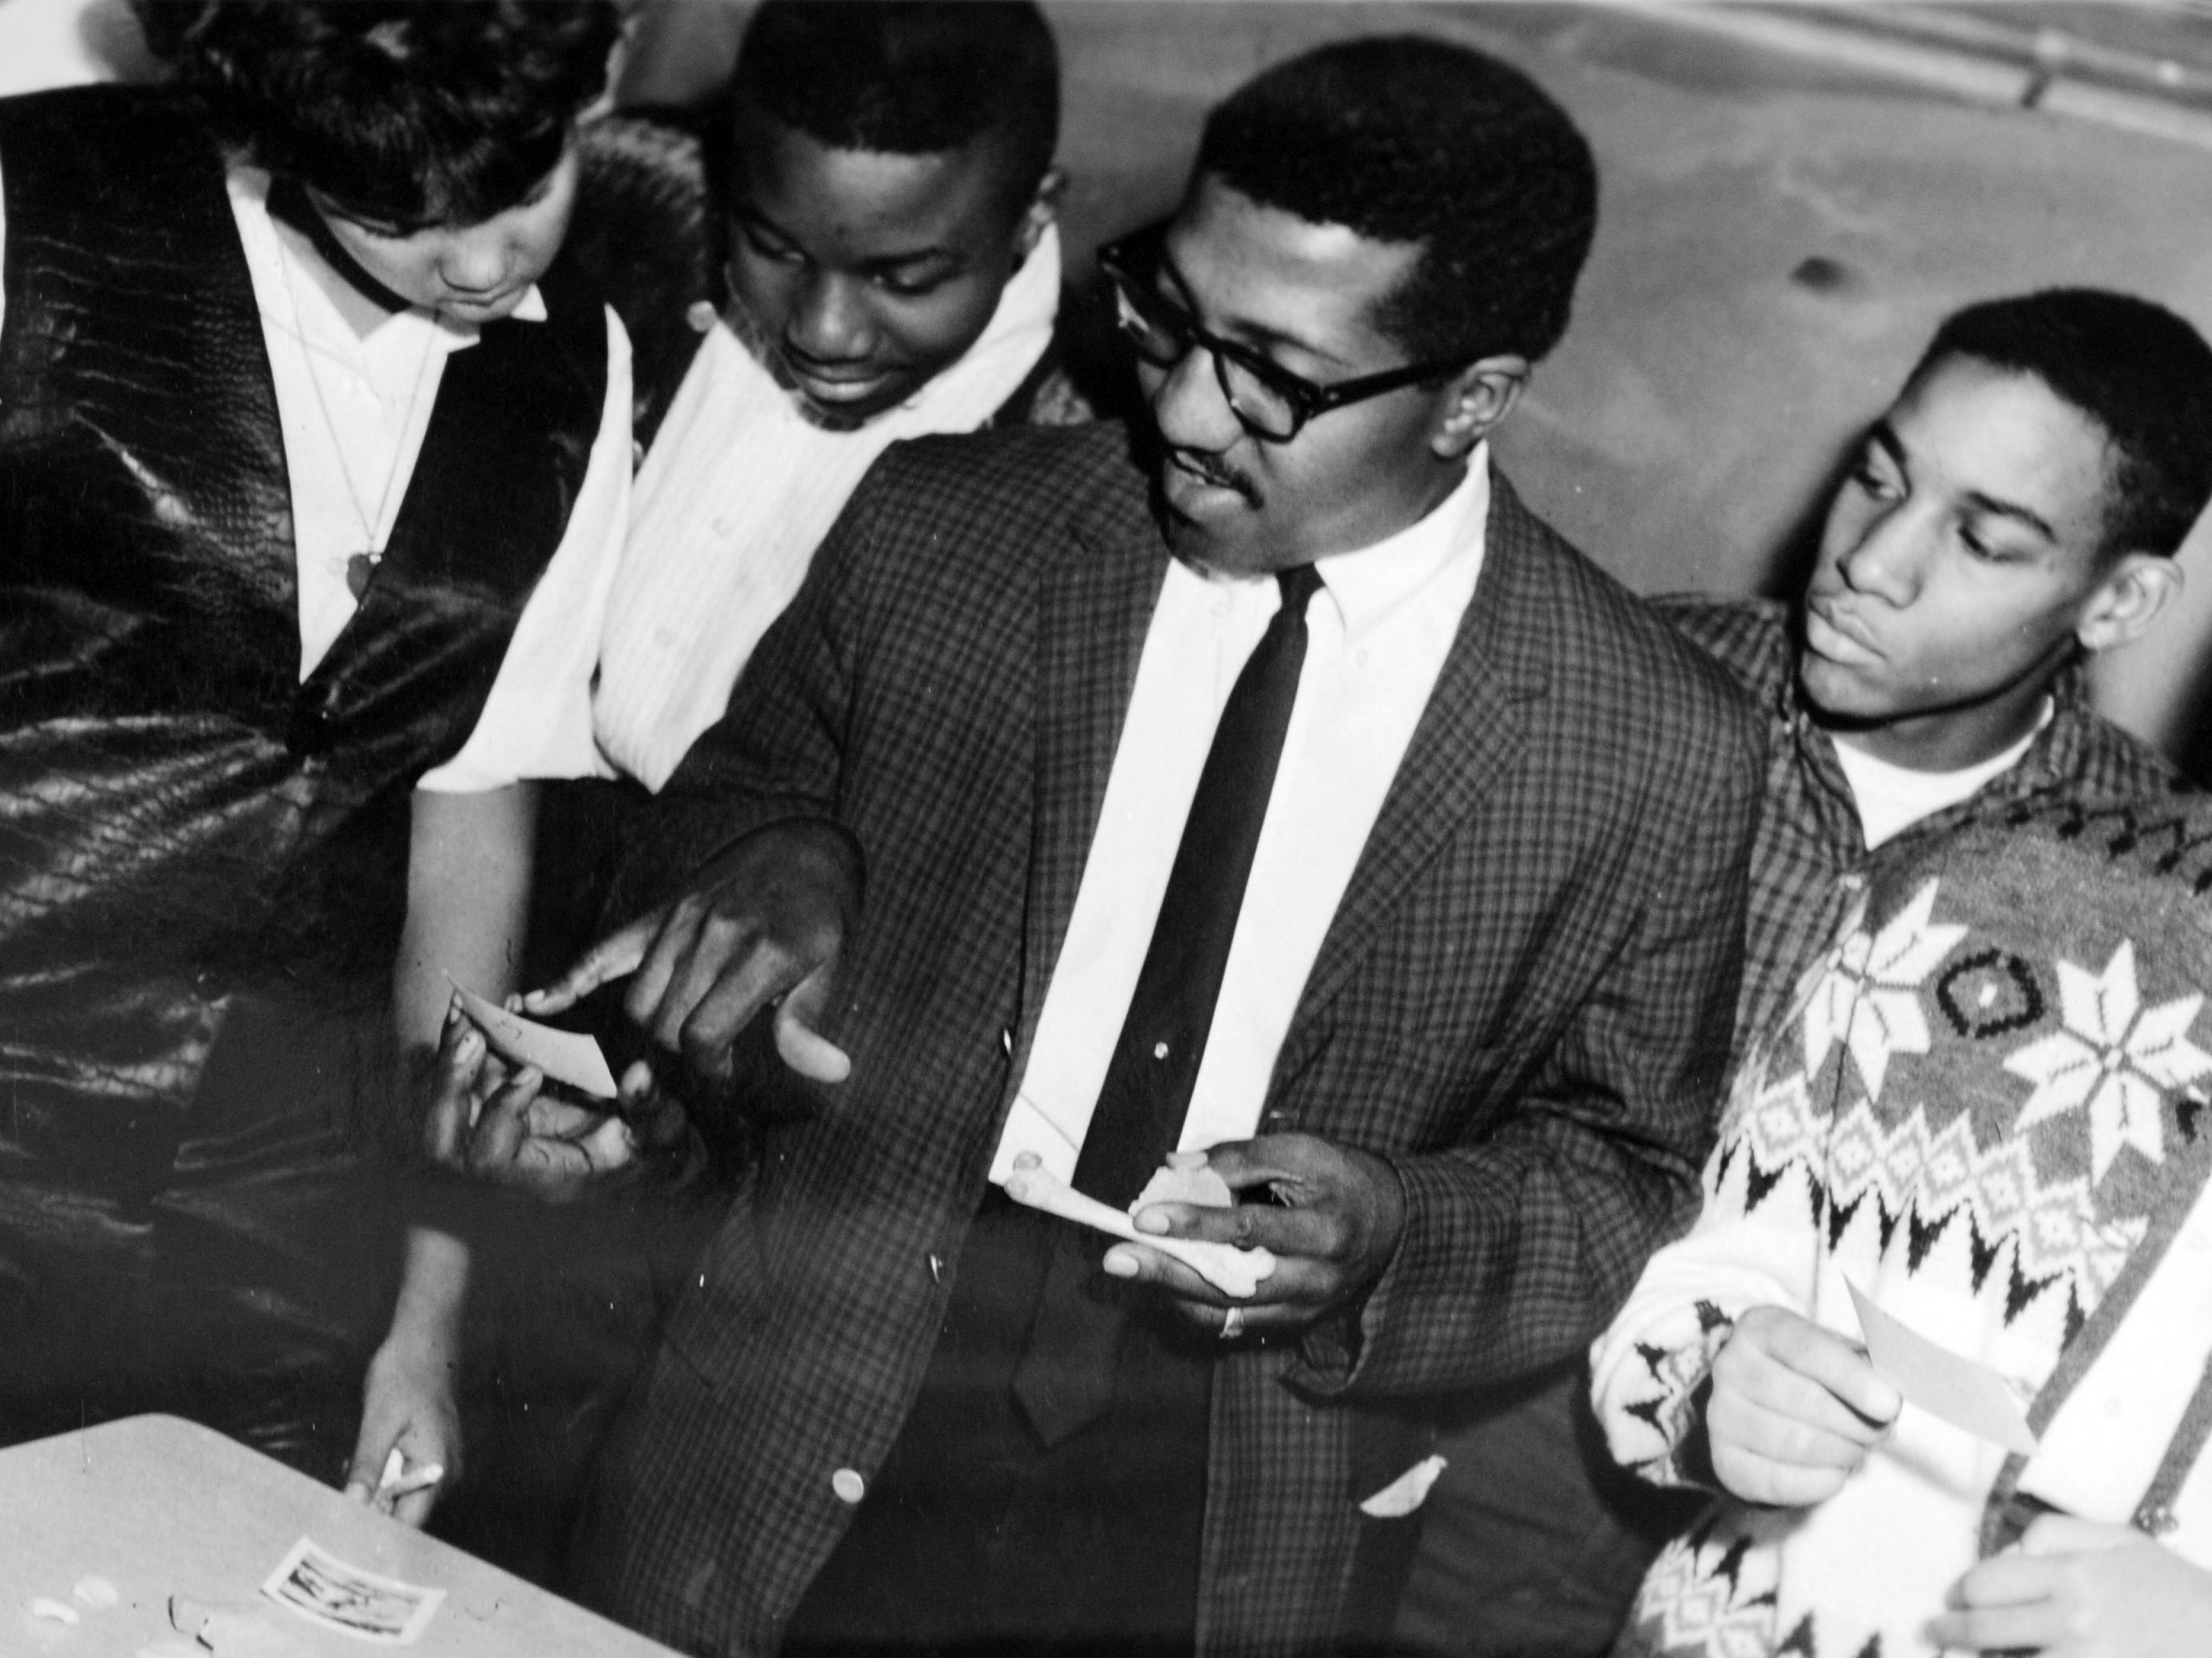 Local historian and former professor Stanley Warren, 78 of Indianapolis, in the mid 1960's while teaching at Crispus Attucks High School.